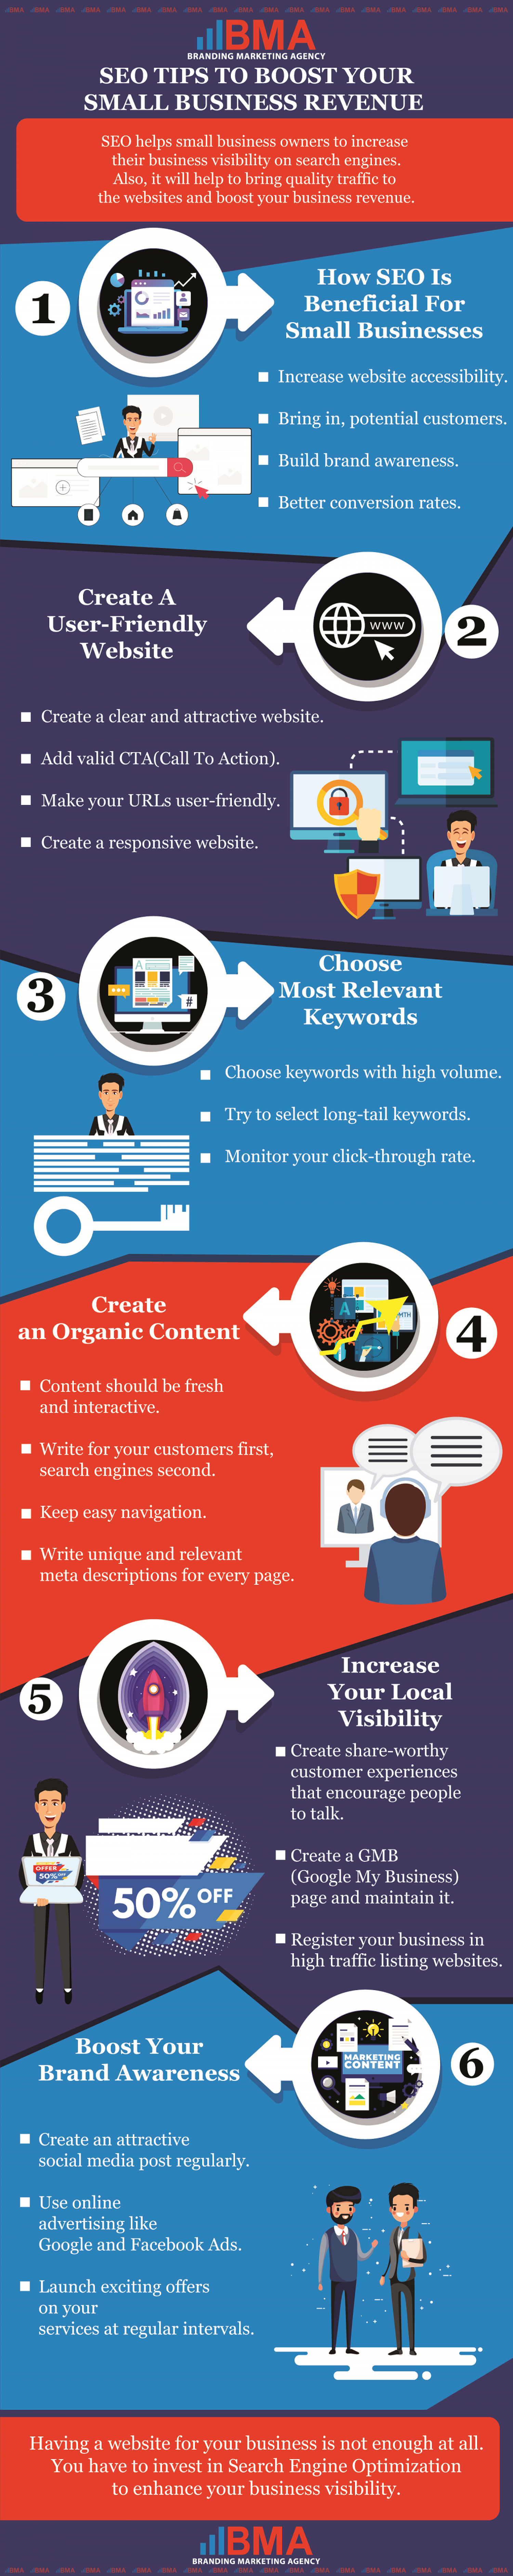 SEO Tips To Boost Your Small Business Revenue Infographic